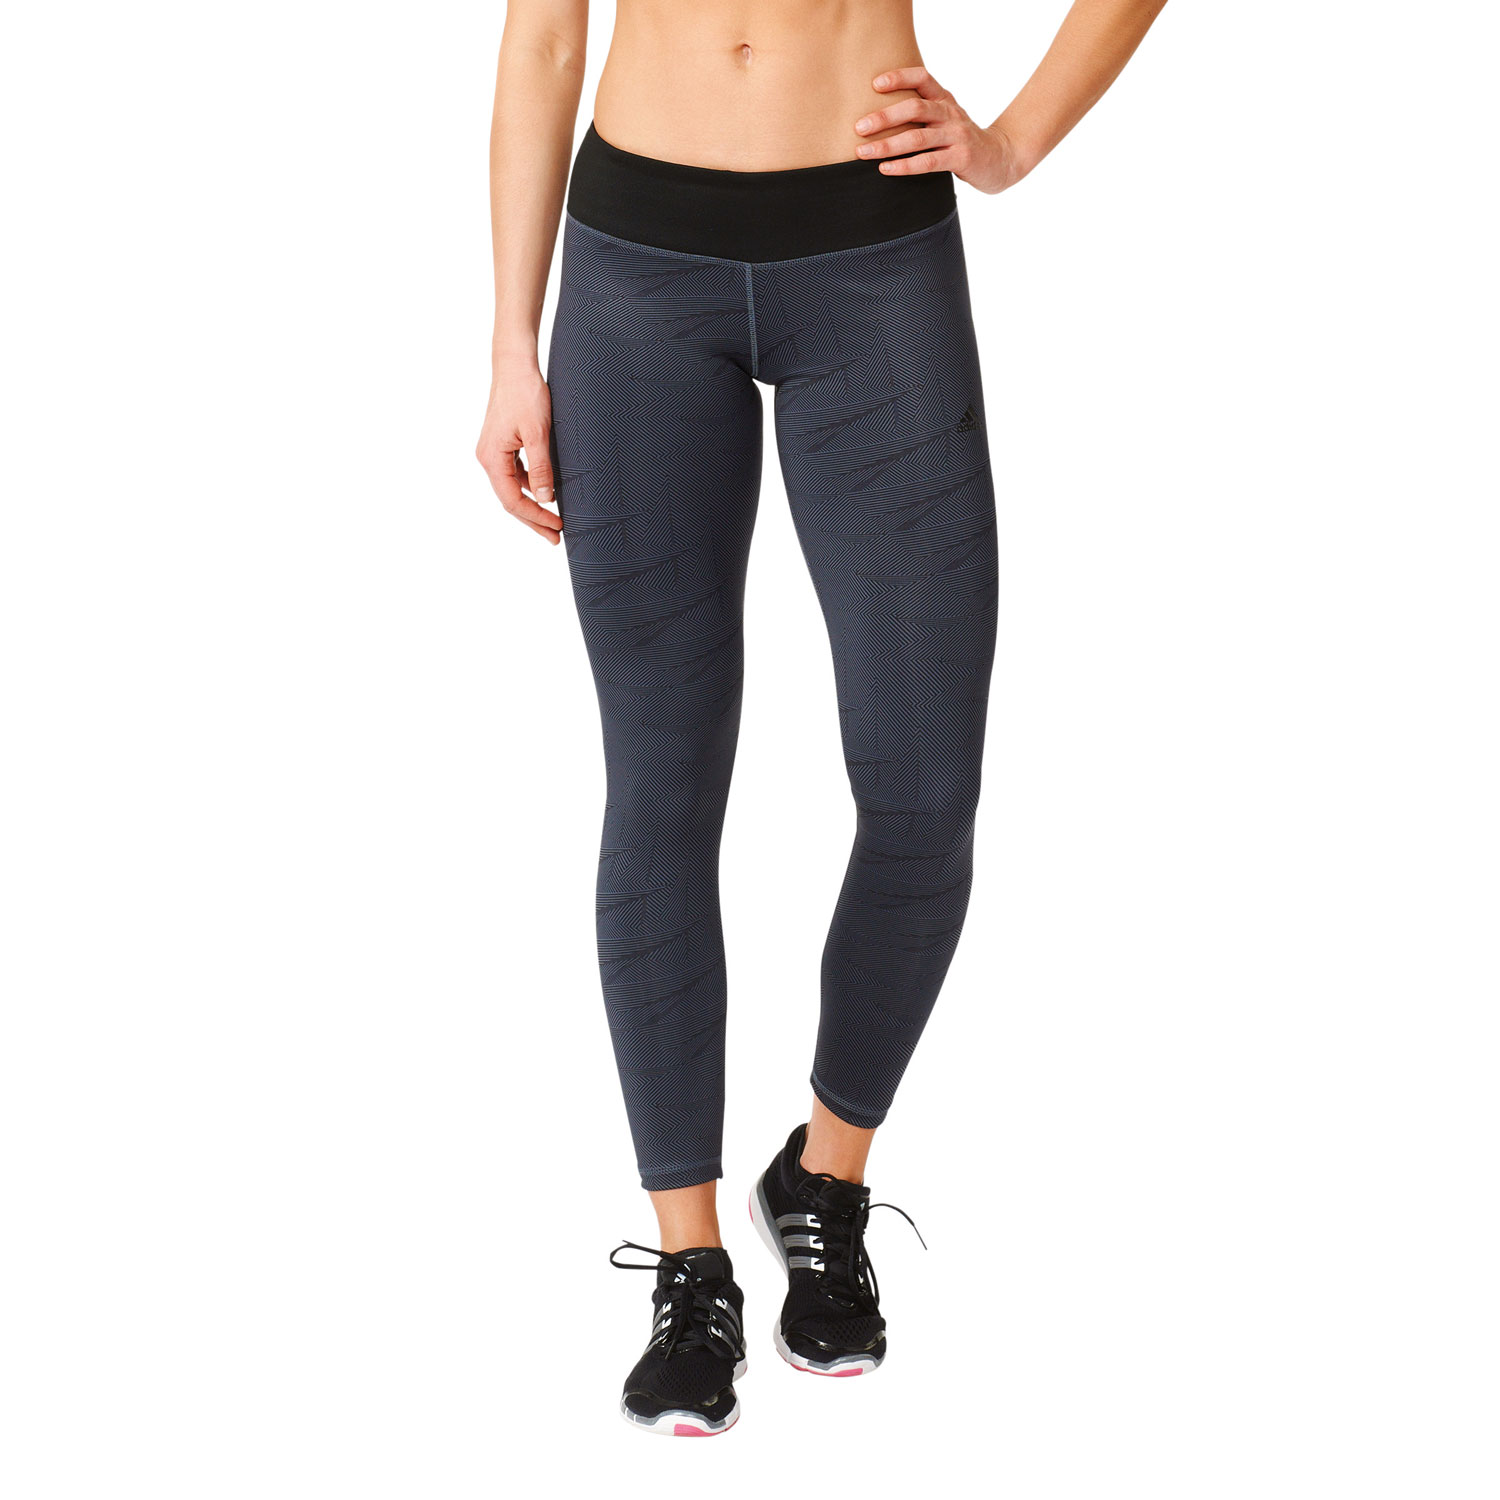 Adidas Basic Long Tight Damen Trainingstight – Bild 3